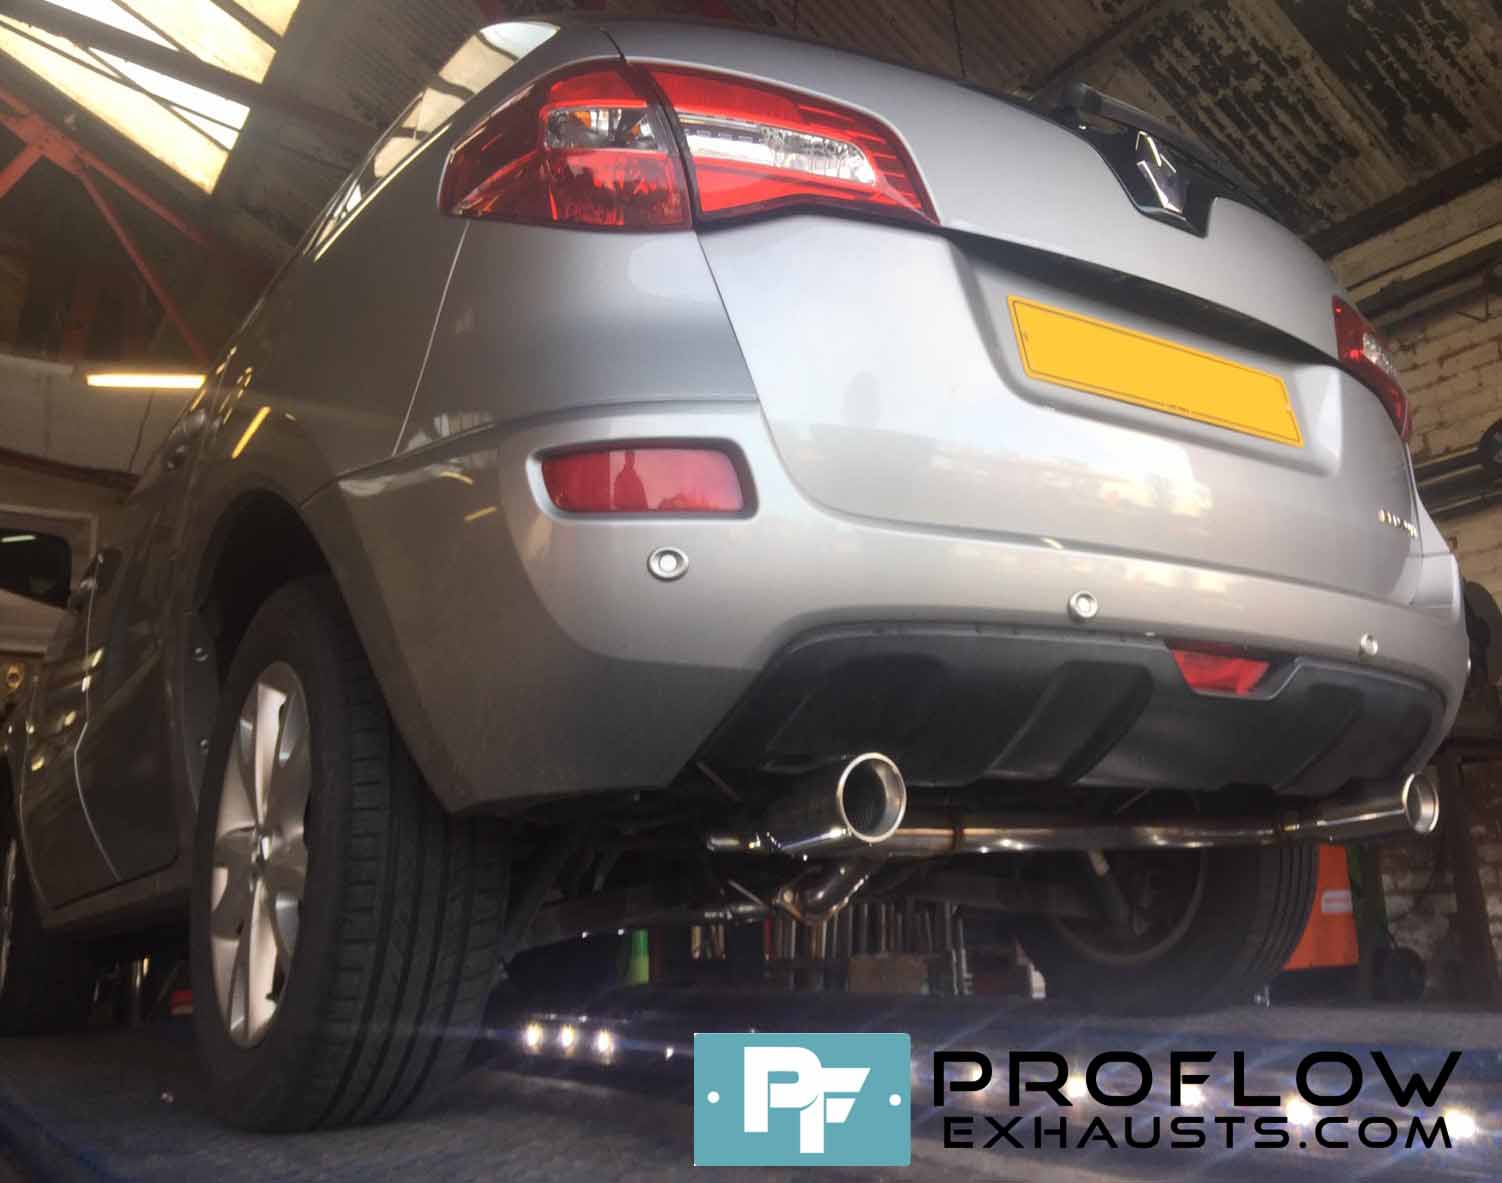 Proflow Exhausts Resonator and Muffler Delete Dual Exit